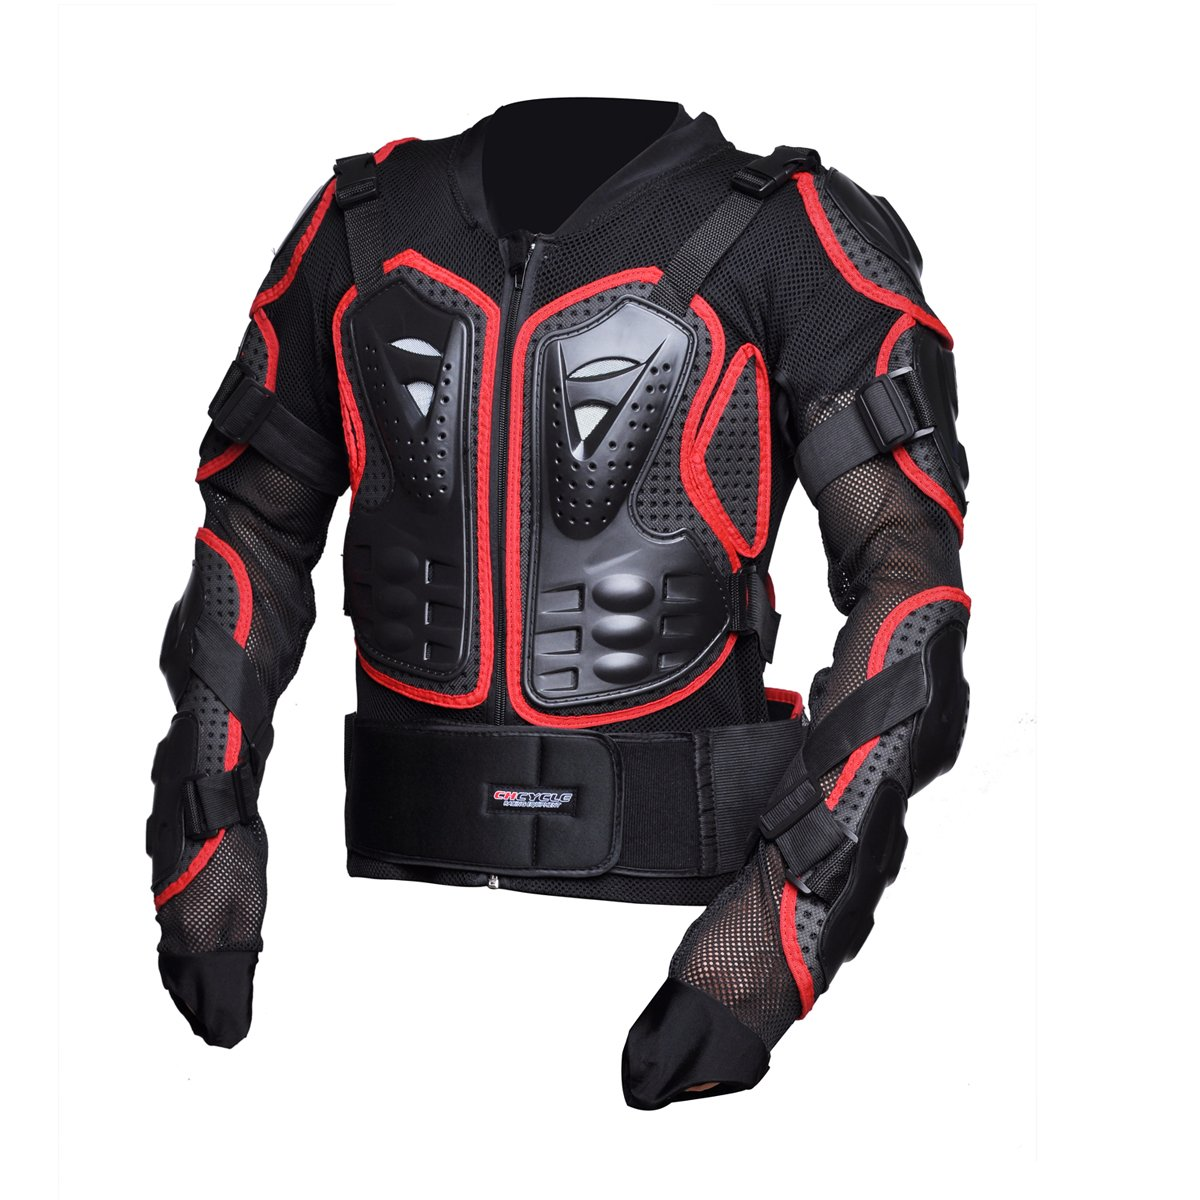 Medium, Black CHCYCLE Motorcycle Full Body Armor Motocross ATV Motorbike Jacket Protector